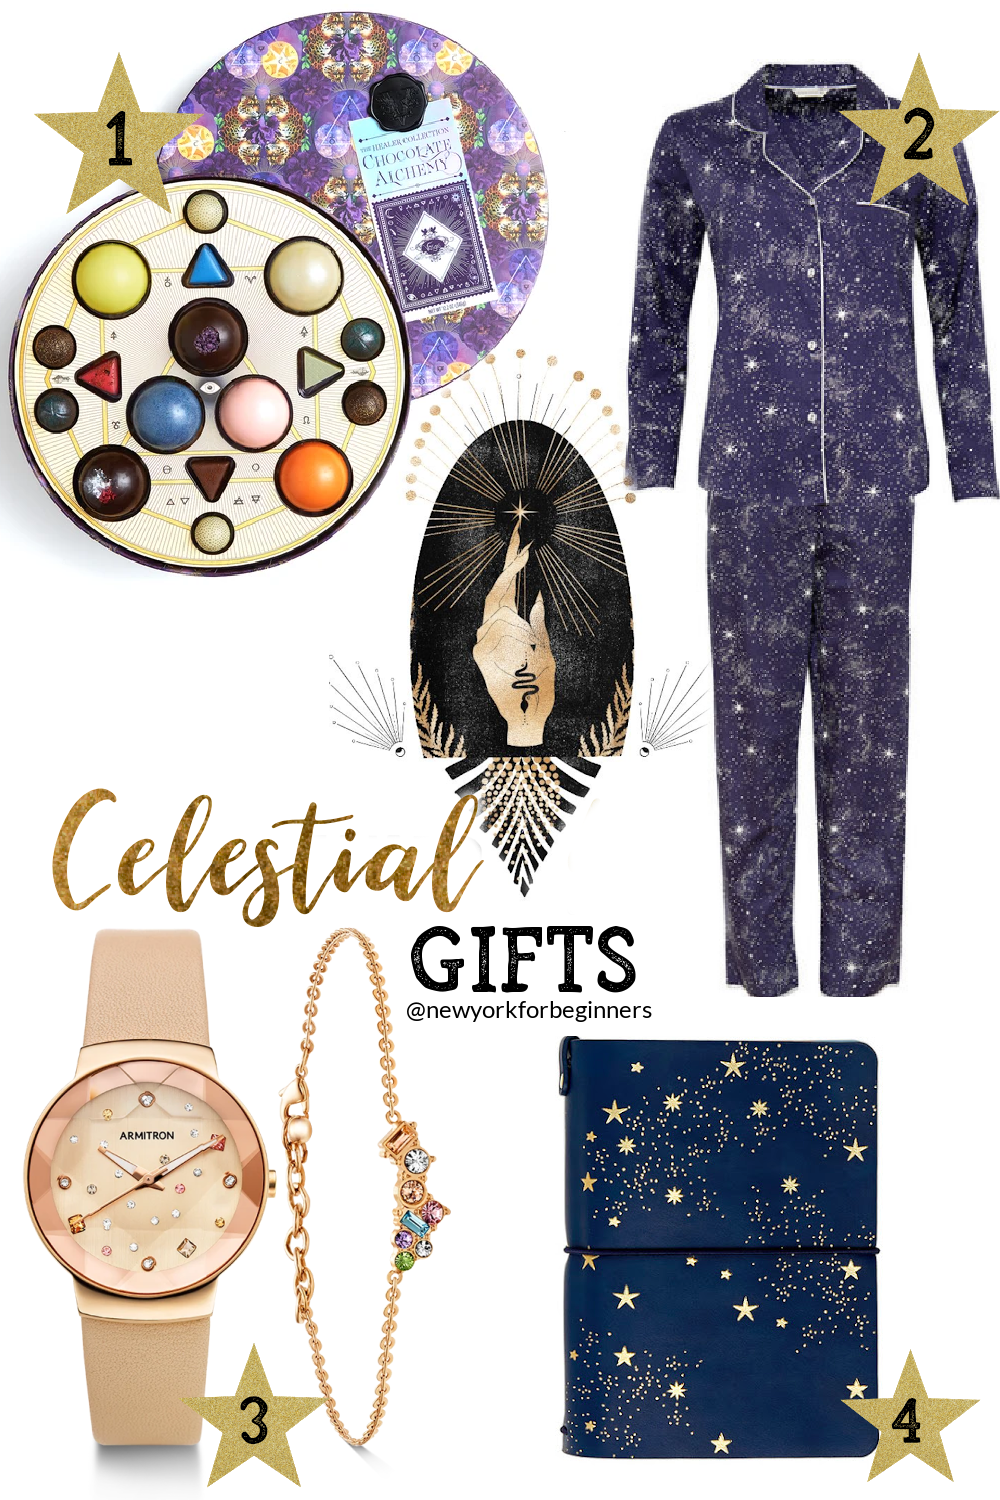 Celestial gifts for woman ideas